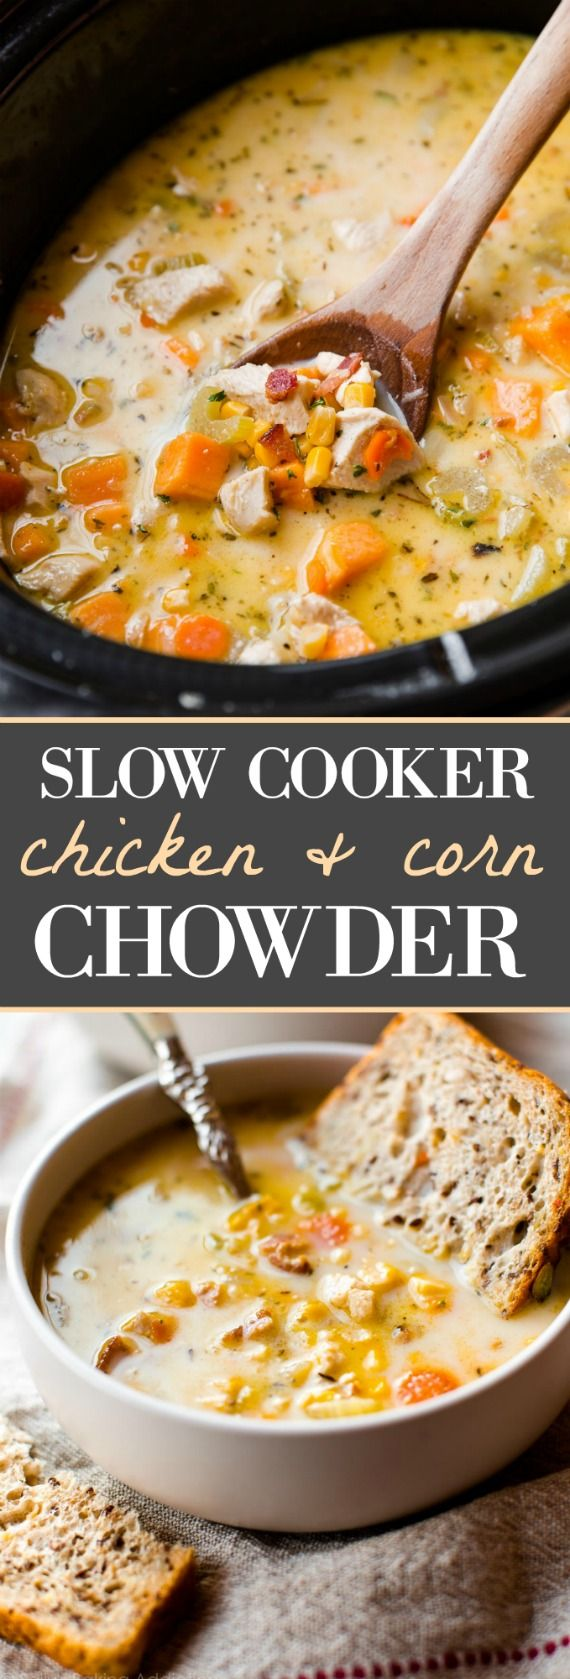 Slow cooker and so easy! Light chicken corn chowder with sweet potato and bacon! Recipe on sallysbakingaddiction.com